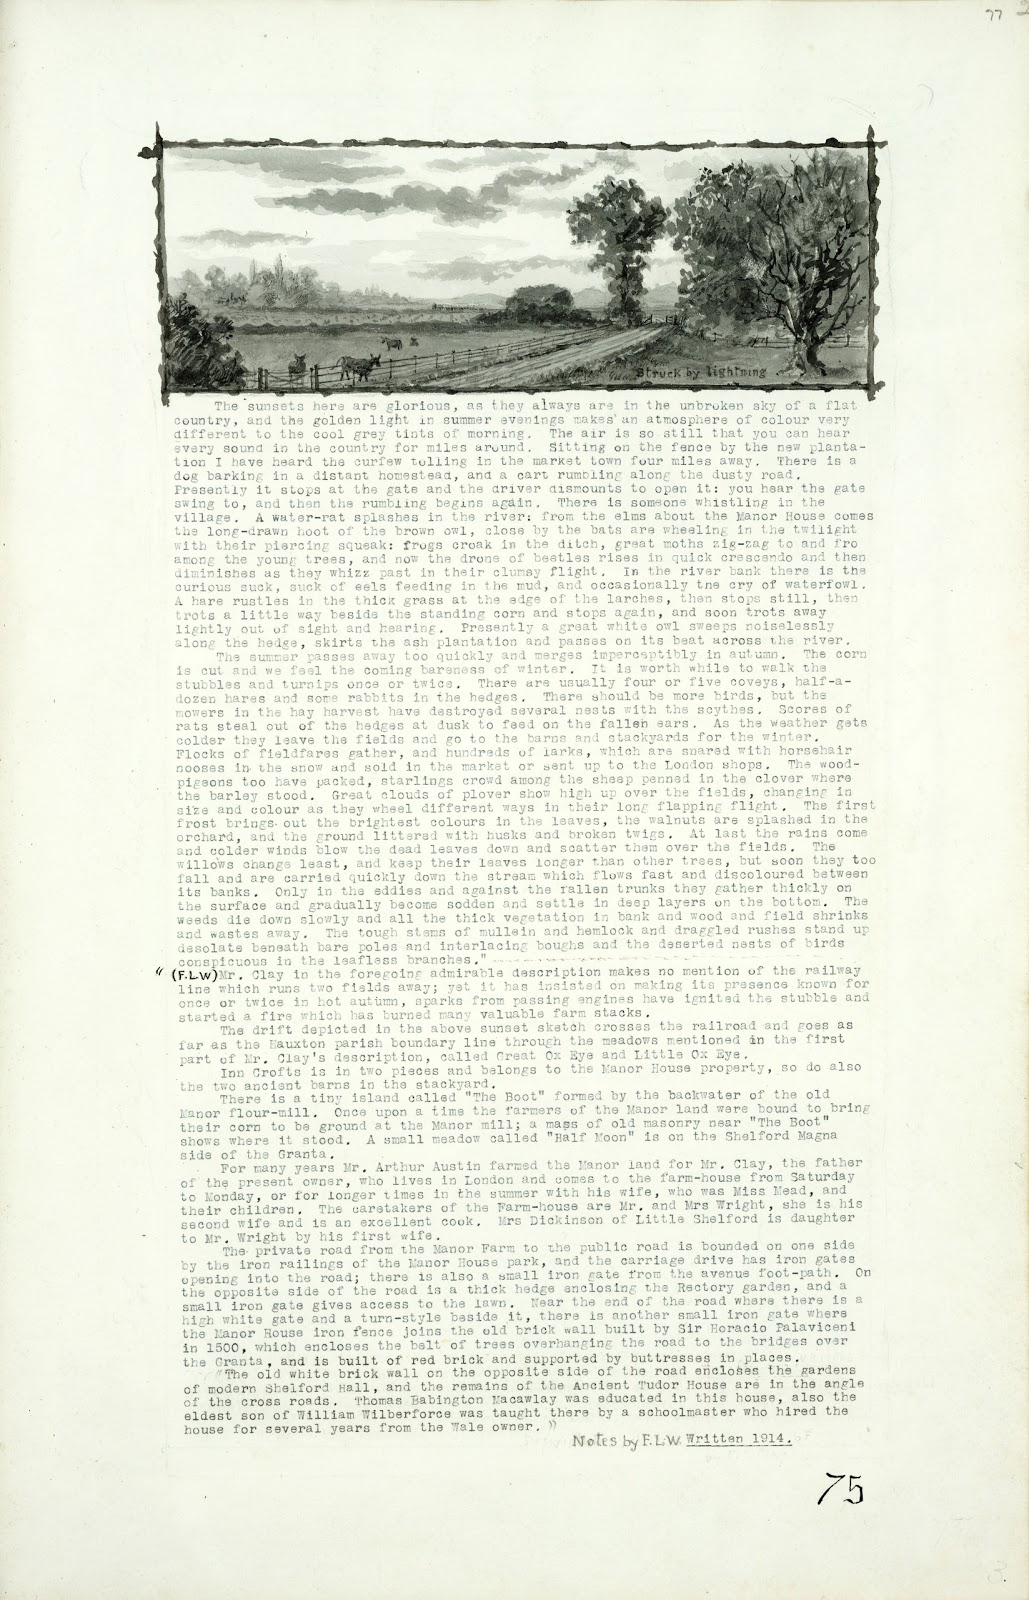 A Record of Shelford Parva by Fanny Wale P75 fo. 77, page 75: Description of The Manor Farm and the village in general continue with a black and white watercolour view showing a tree struck by lightning, 1914. Notes by F.L.W. [not in photographic copy]